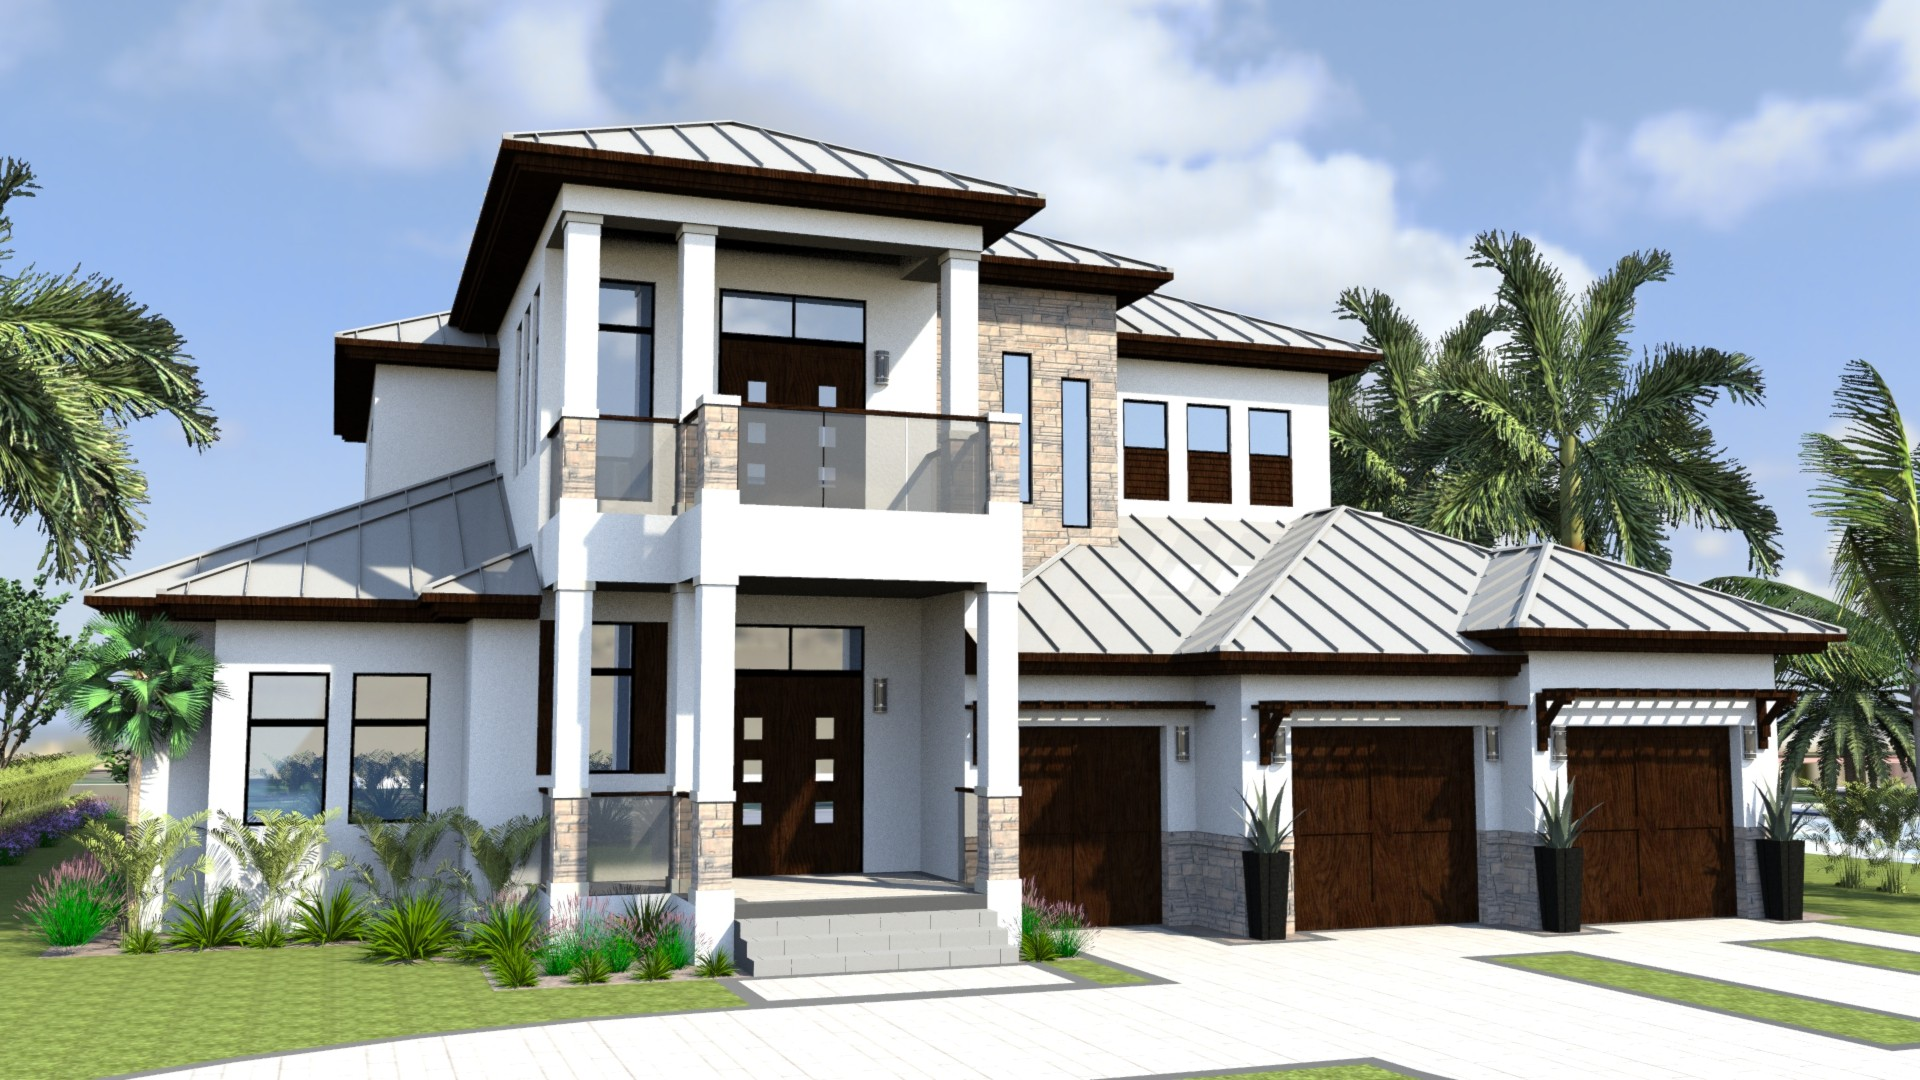 17 best images about florida cracker house plans on Florida style home plans